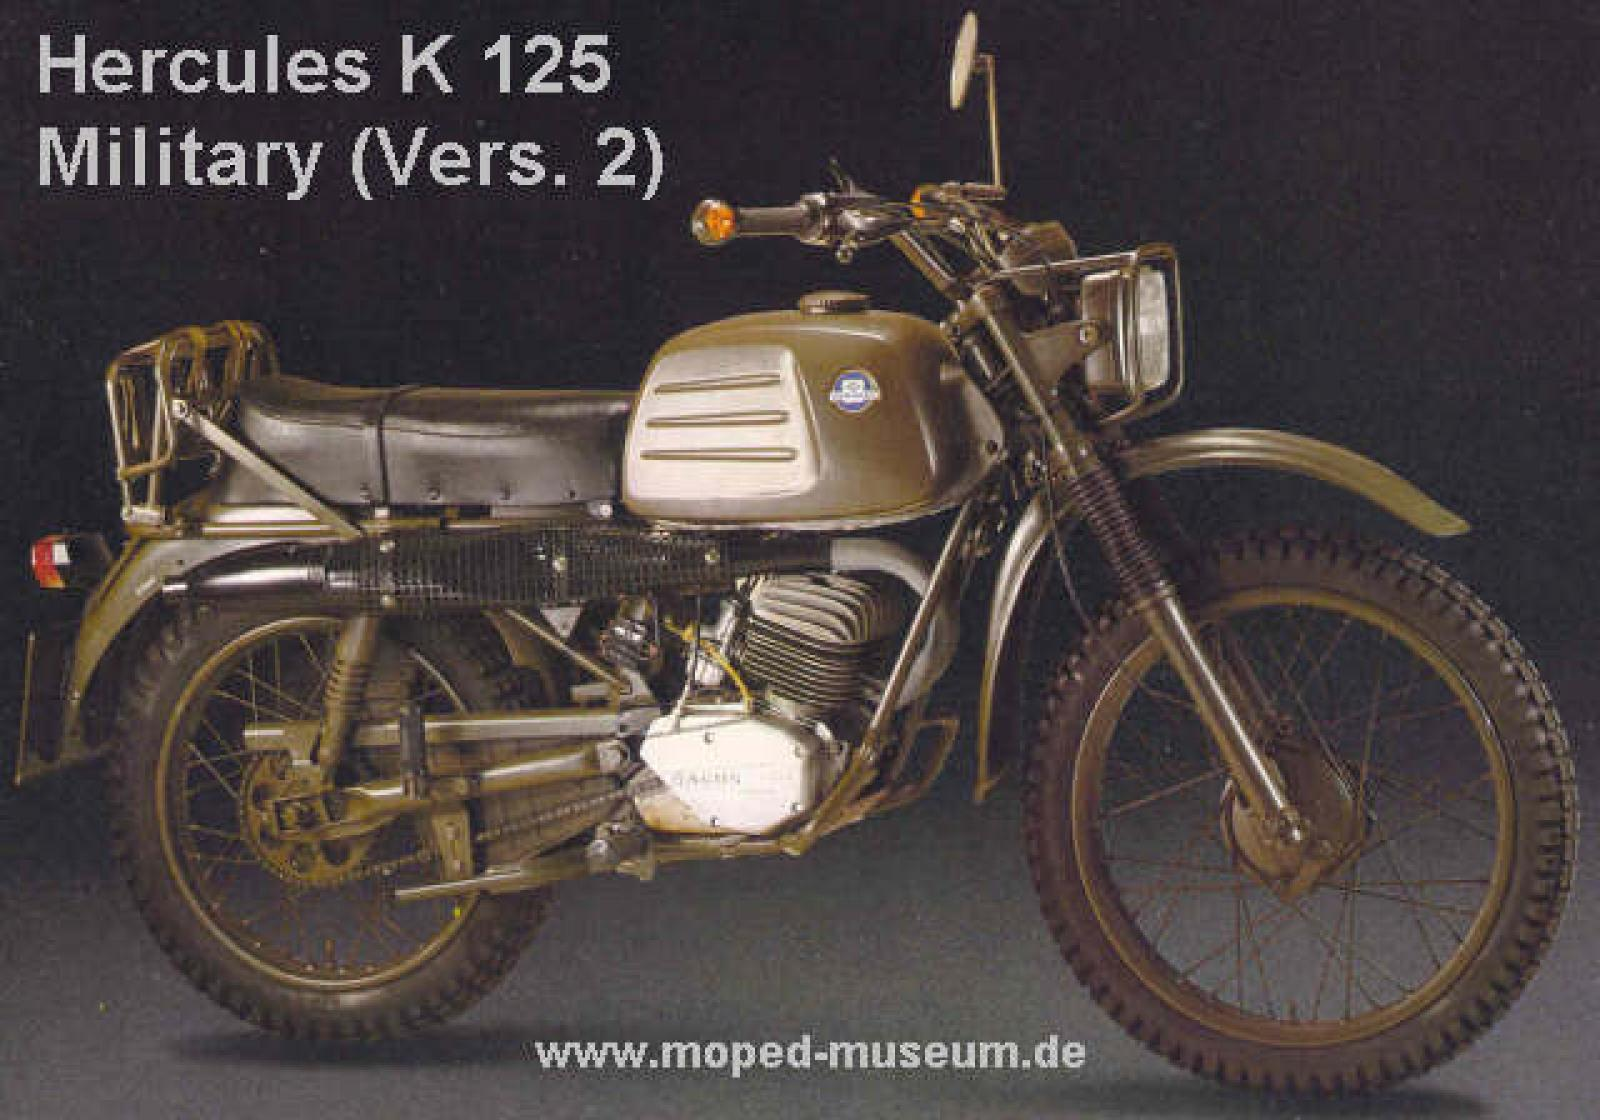 Hercules K 125 Military 1983 images #74534